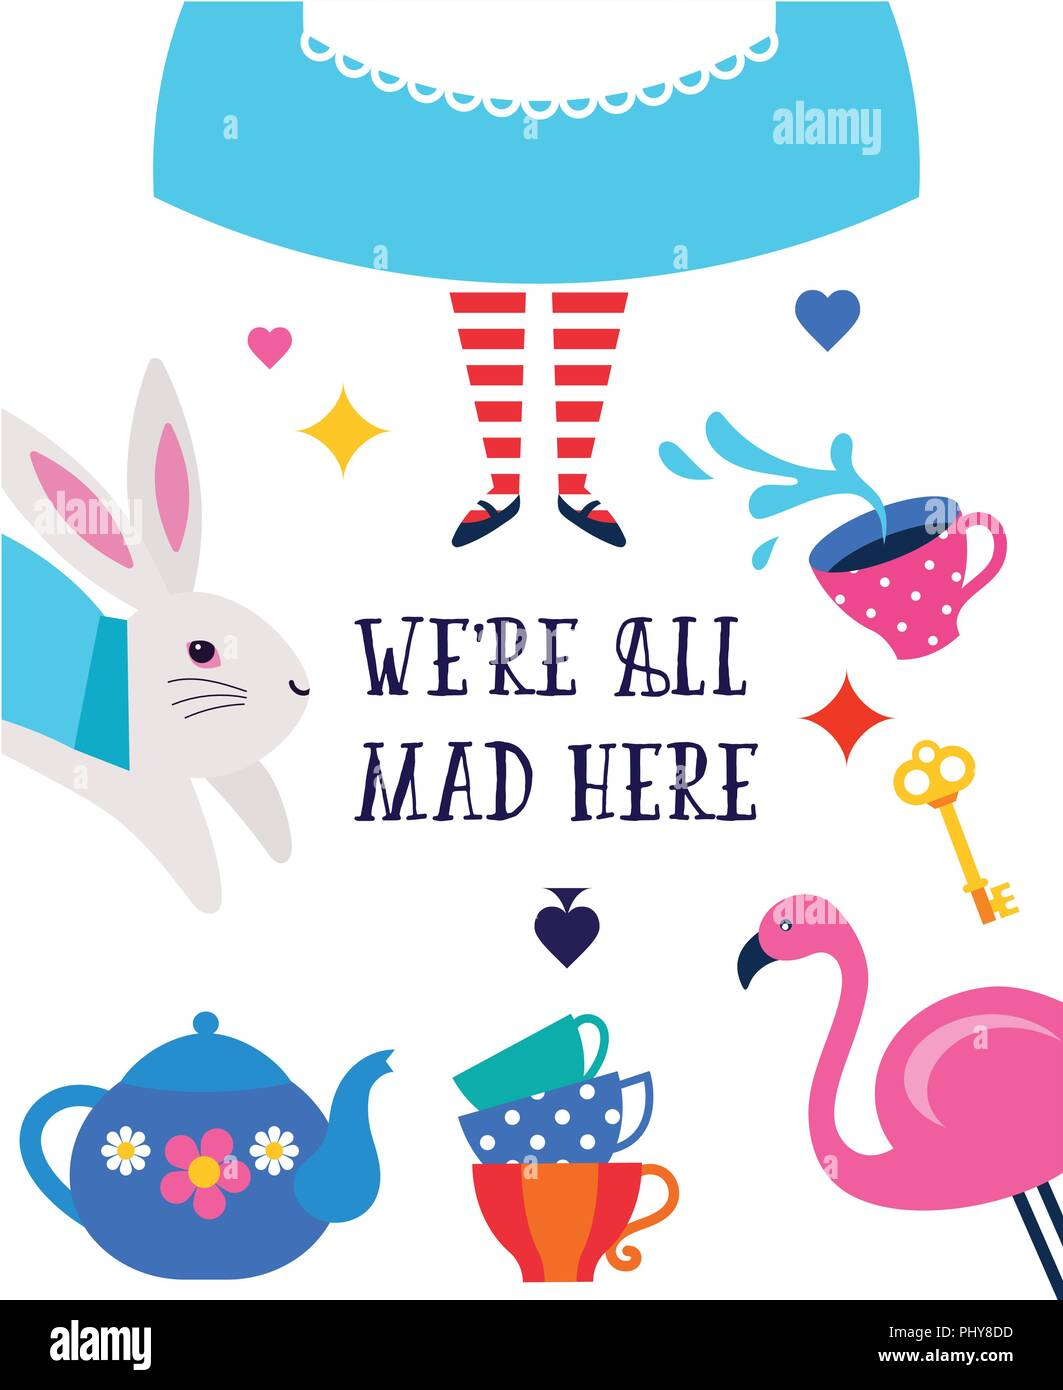 Alice in Wonderland banner, poster and card. We are mad here. Colorful vector background - Stock Image